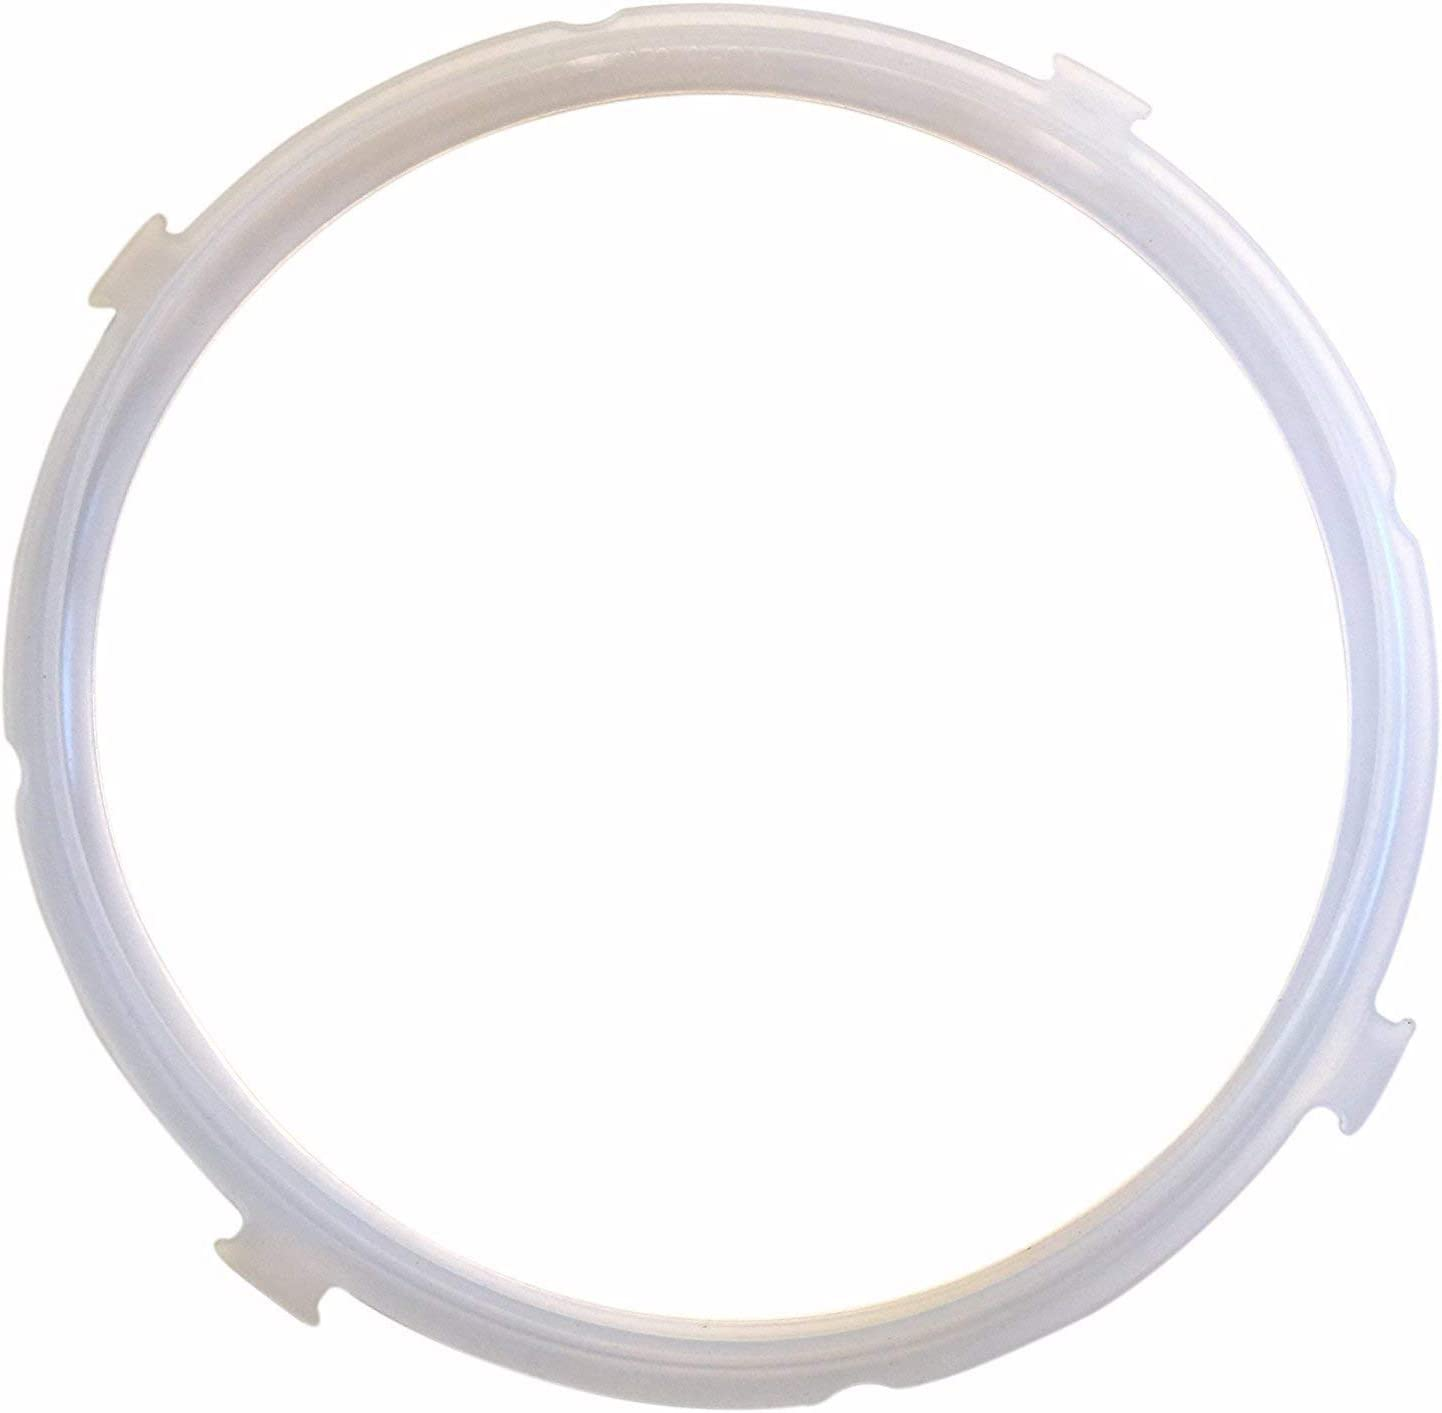 """""""Silicone Gasket Compatible with FARBERWARE 7-In-1 Programmable (2nd GEN) Pressure Cooker Model WM-CS6016WP"""". This gasket is not created or sold by Farberware."""